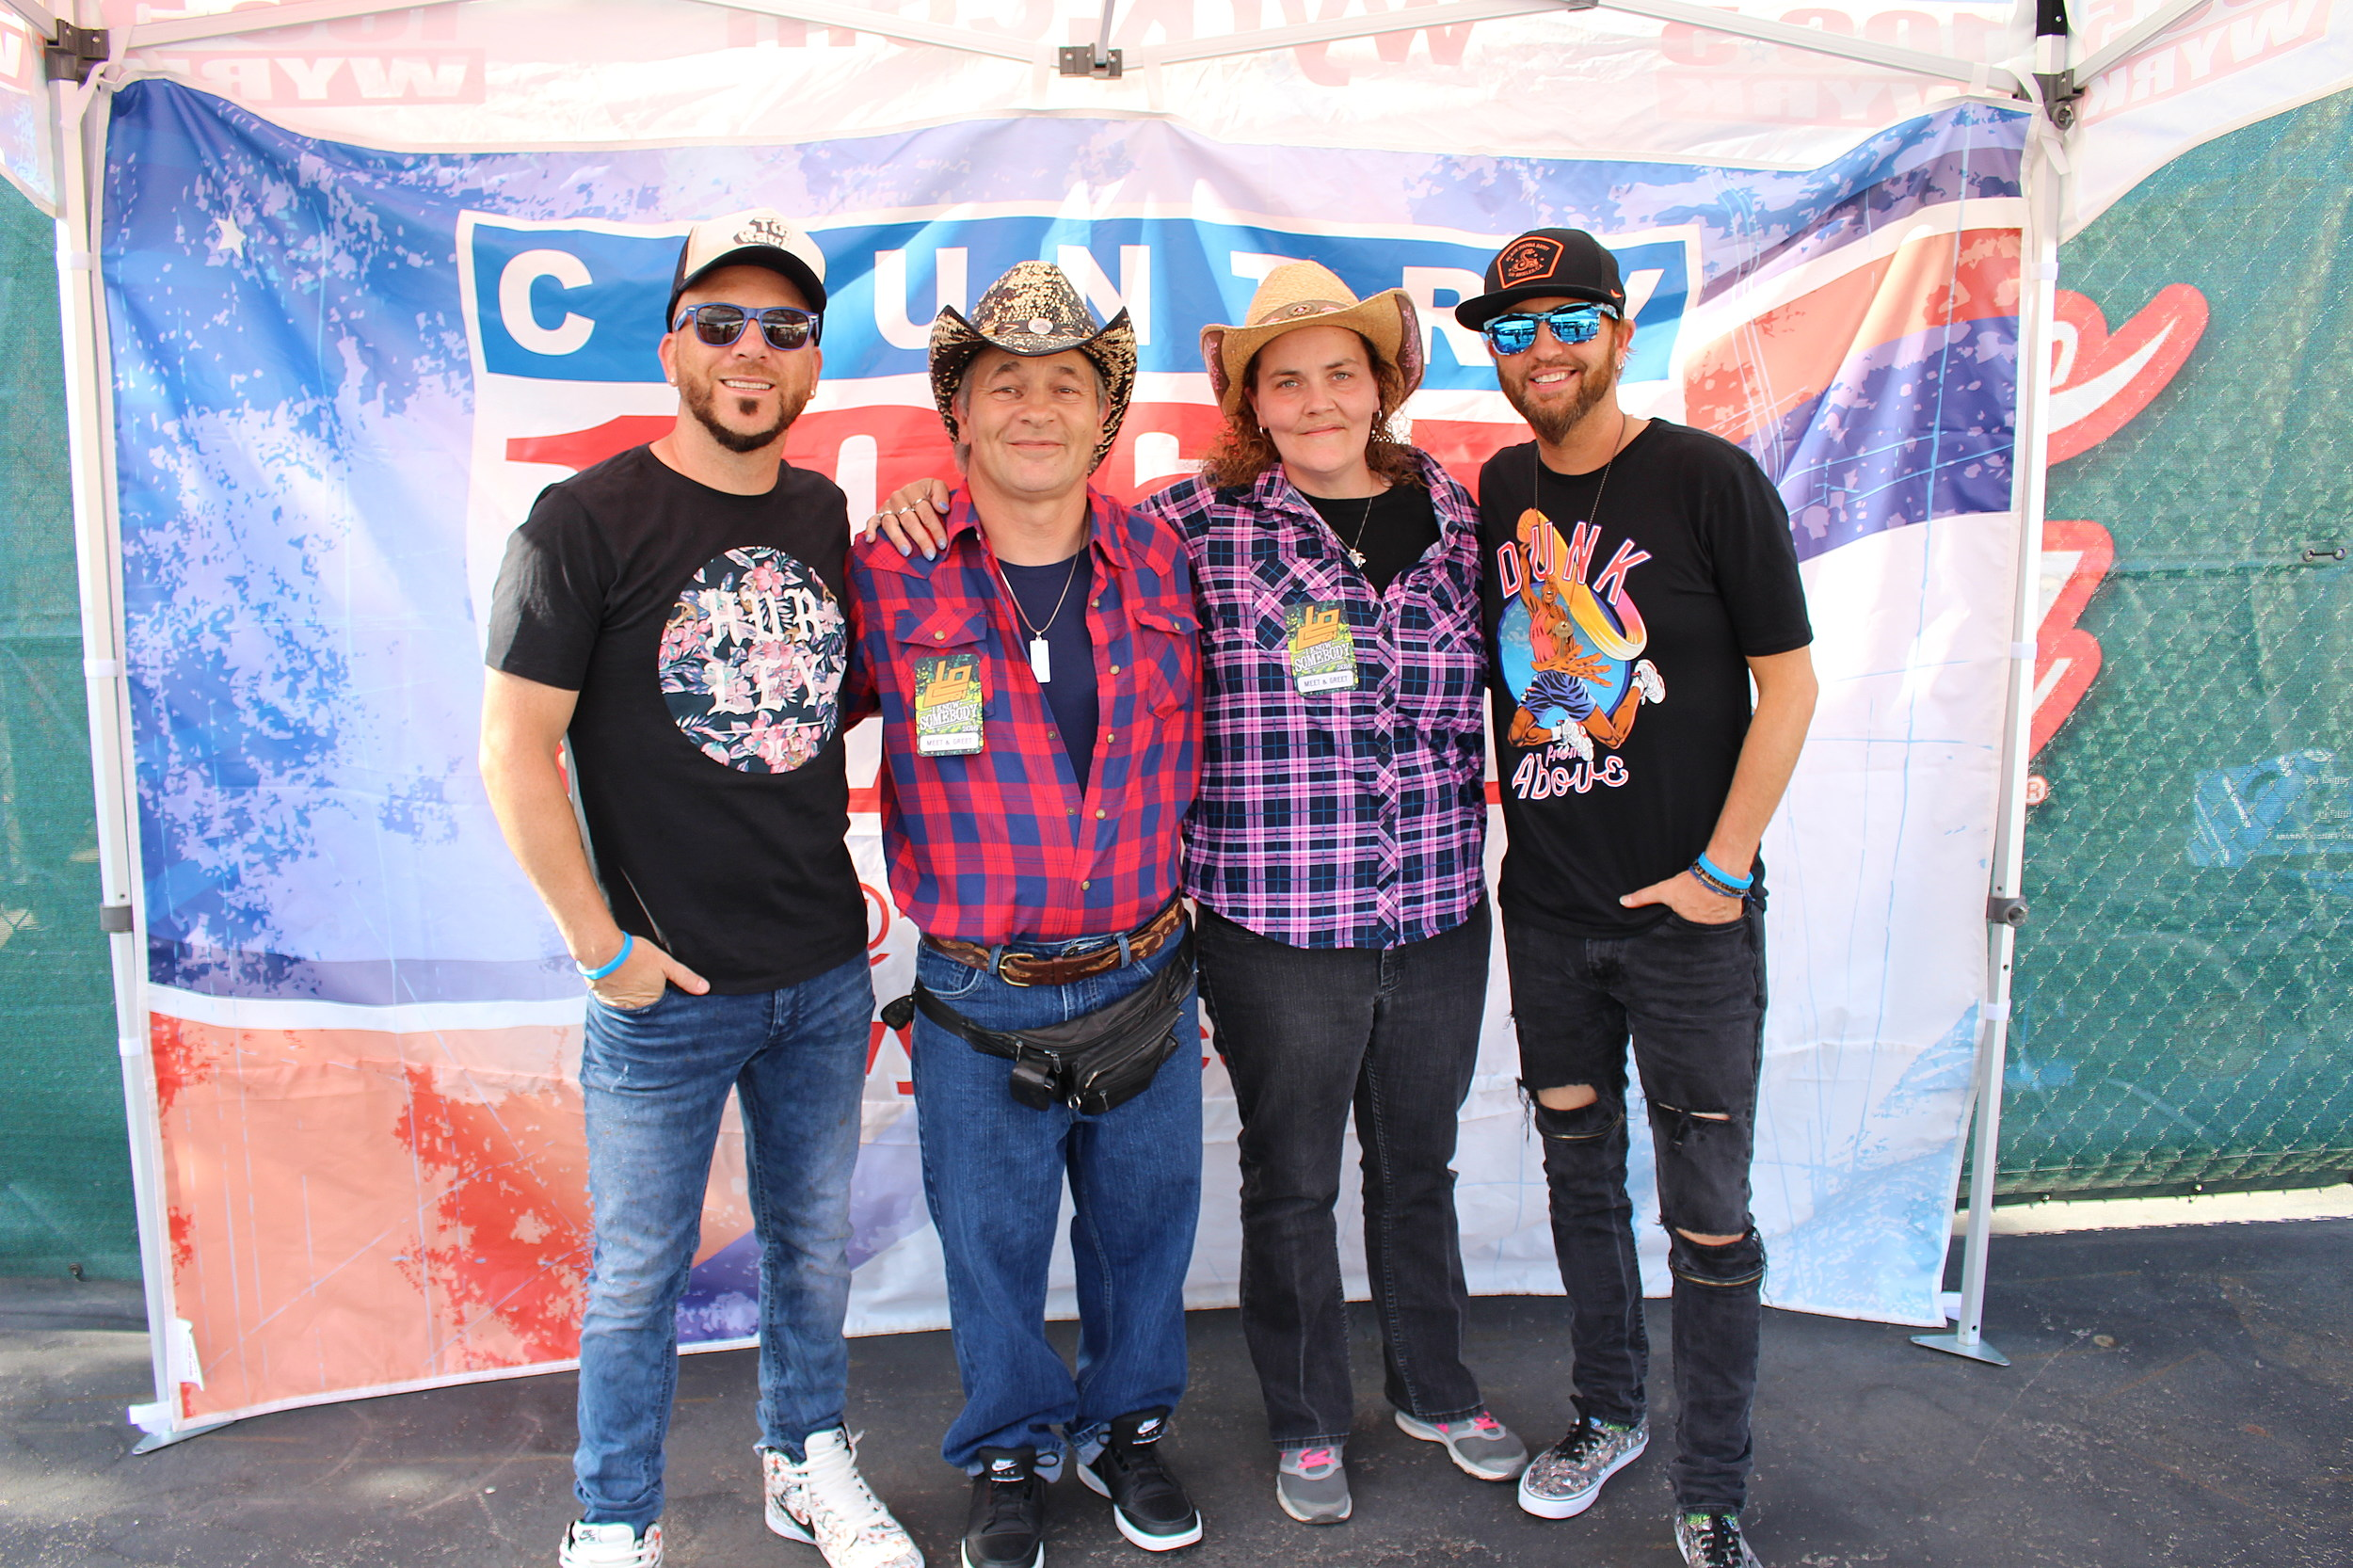 Locash taste of country buffalo 2016 meet and greet photos kristyandbryce Images